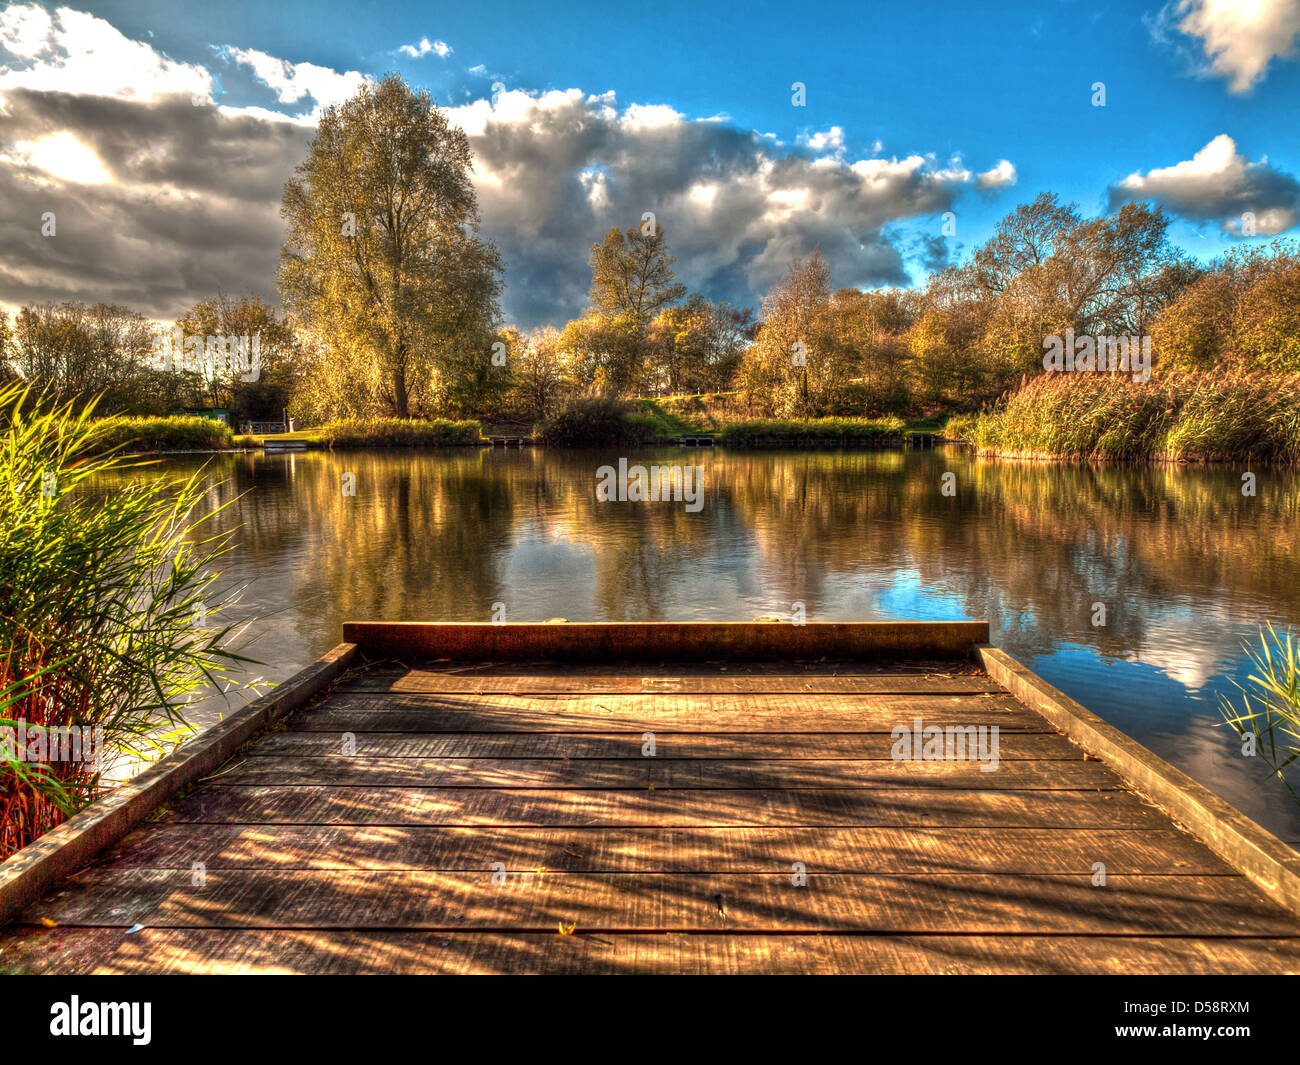 a fishing peg at a local pond - Stock Image